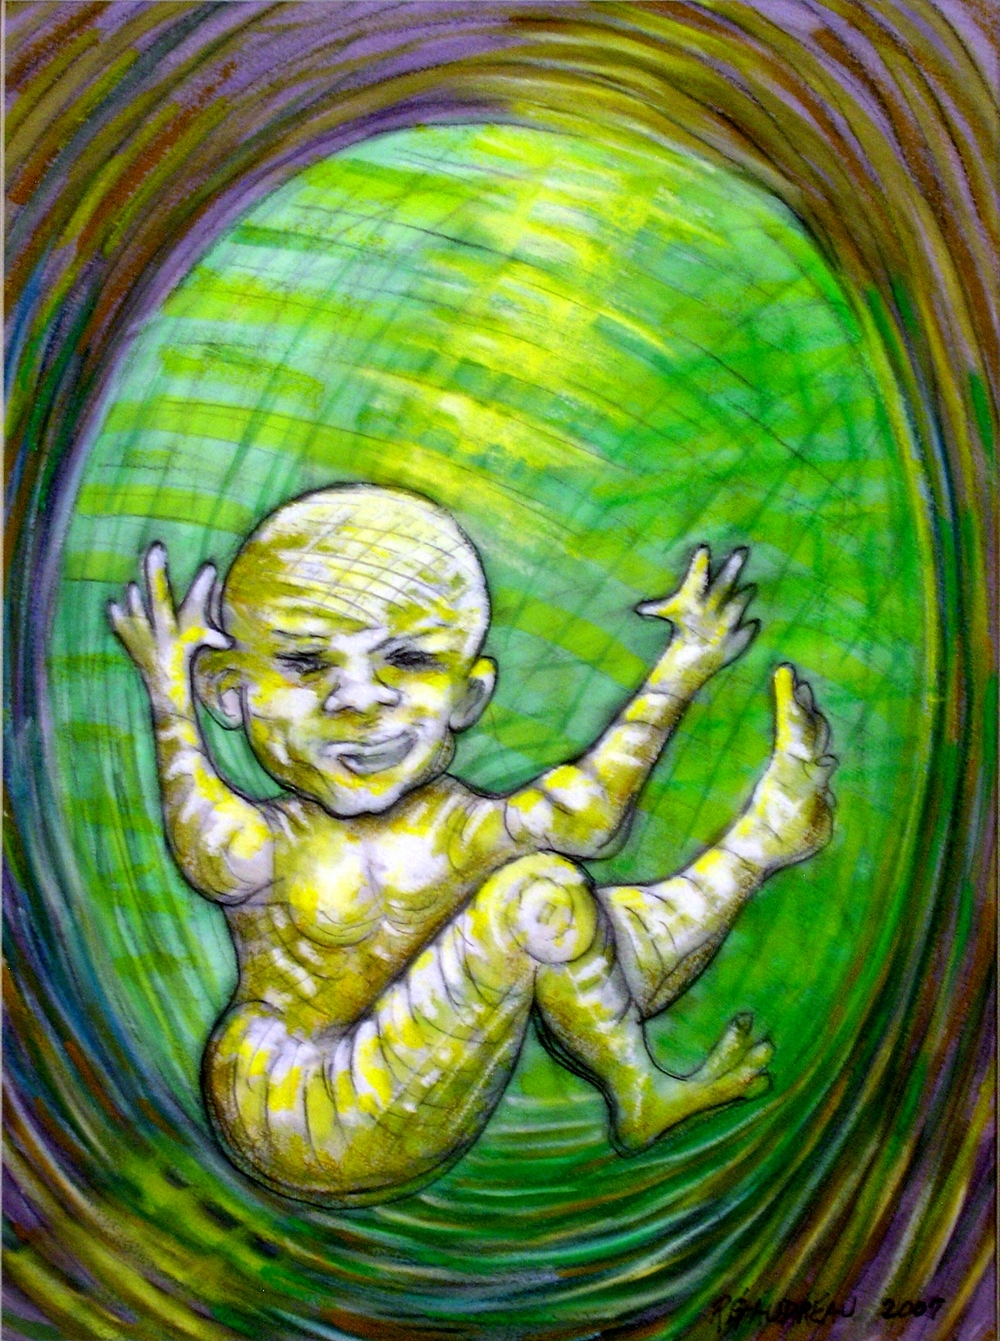 My Daughters Embryonic State Waving     2007 Gouache, Oil Pastel mixed media painting on watercolor paper 16H x 12W inches